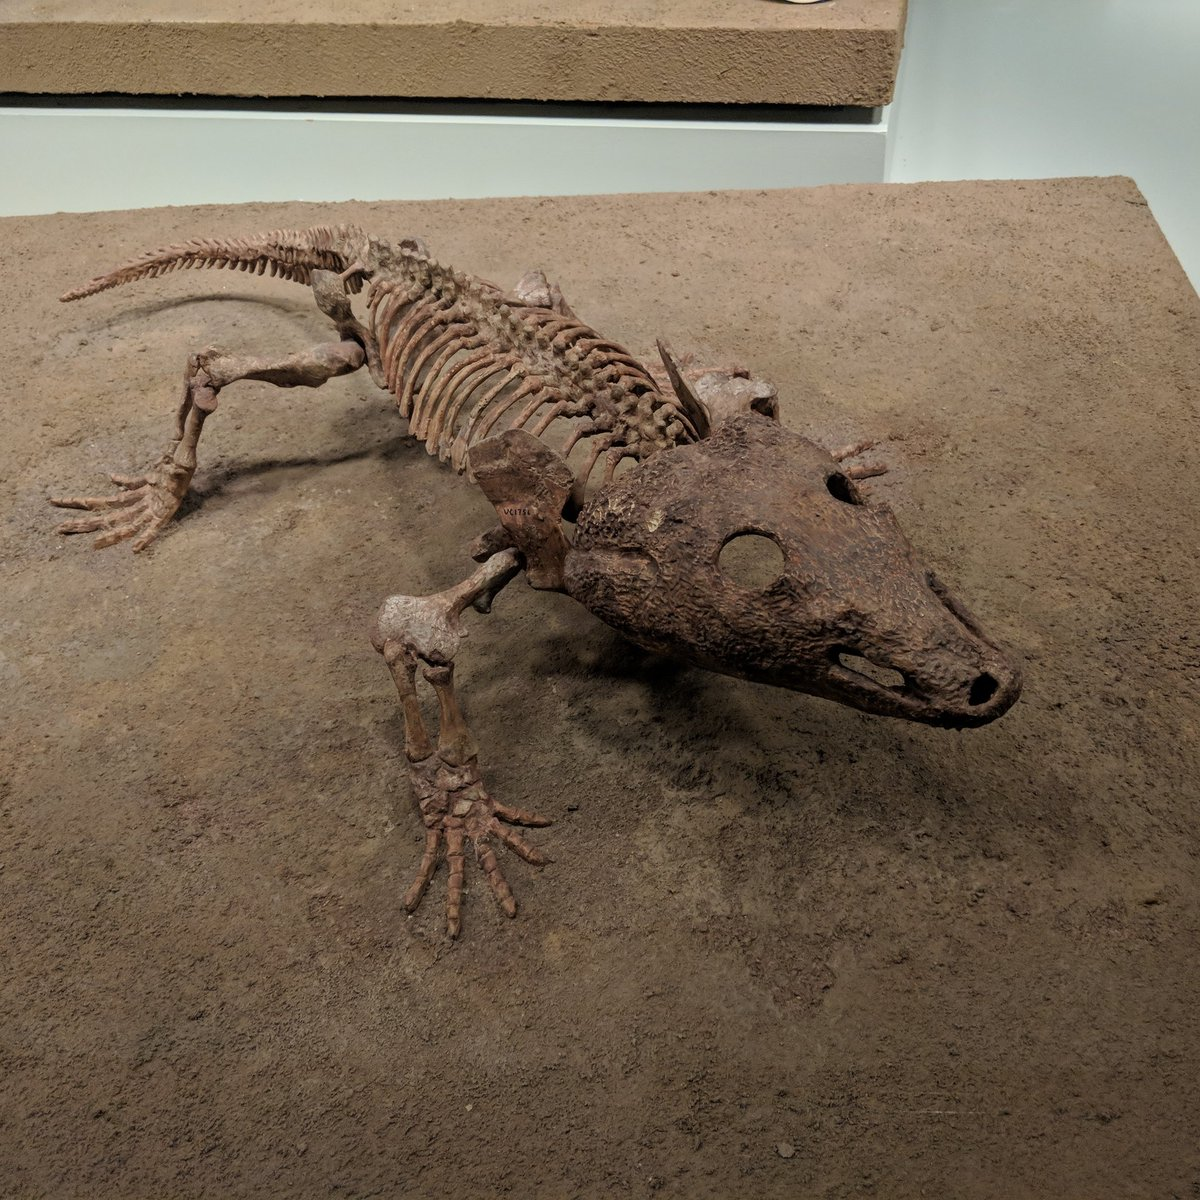 Temnospondyls were poised to be some of the dominant terrestrial vertebrates. If only they could&#39;ve gotten over that whole not having an amnion thing... Acheloma @FieldMuseum #FossilFriday #temnospondyl<br>http://pic.twitter.com/lc7WAp1Ey8